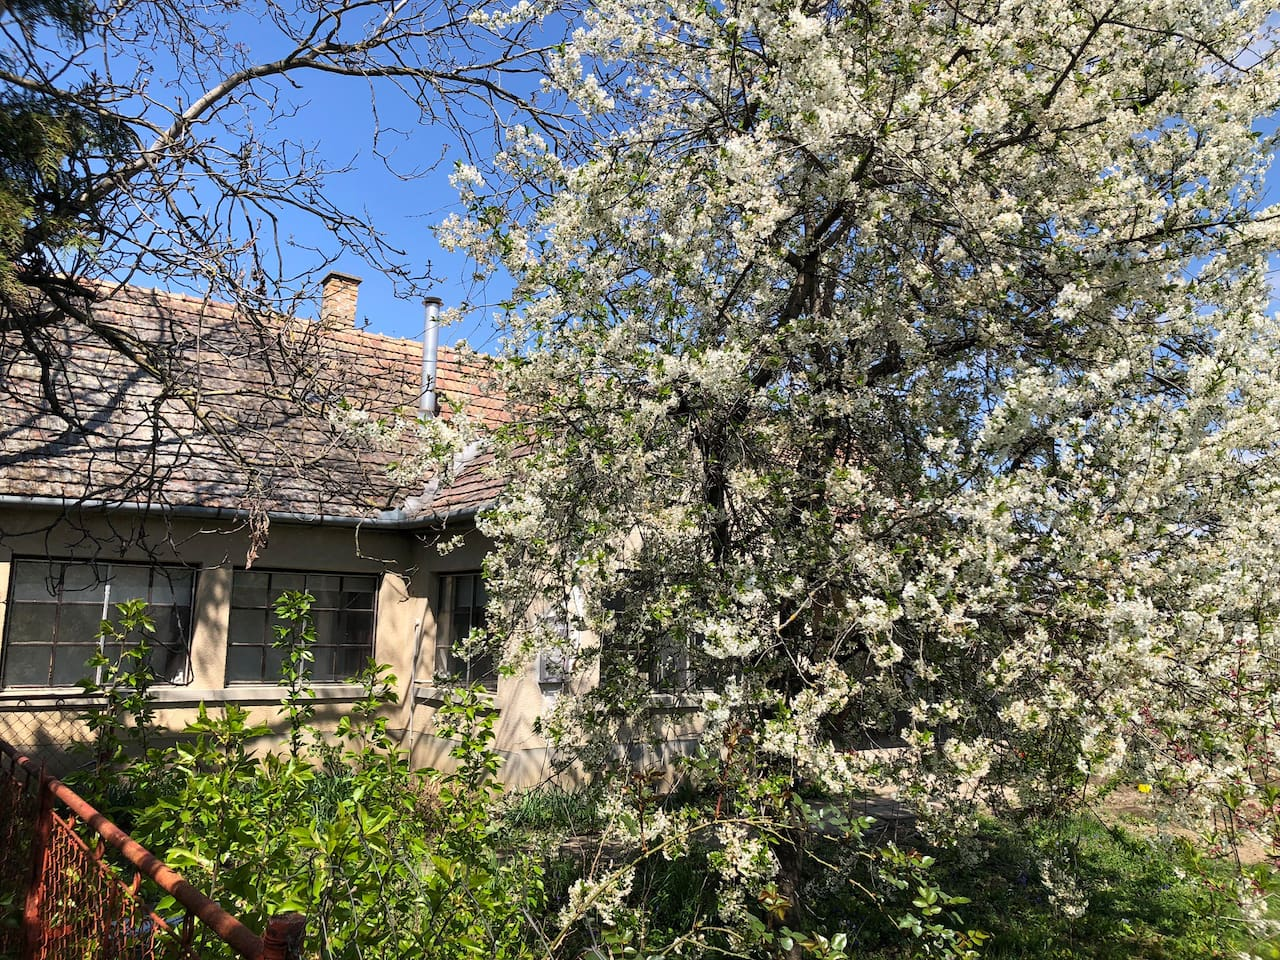 Come enjoy the beautiful blooming trees in the front yard of the cottage!